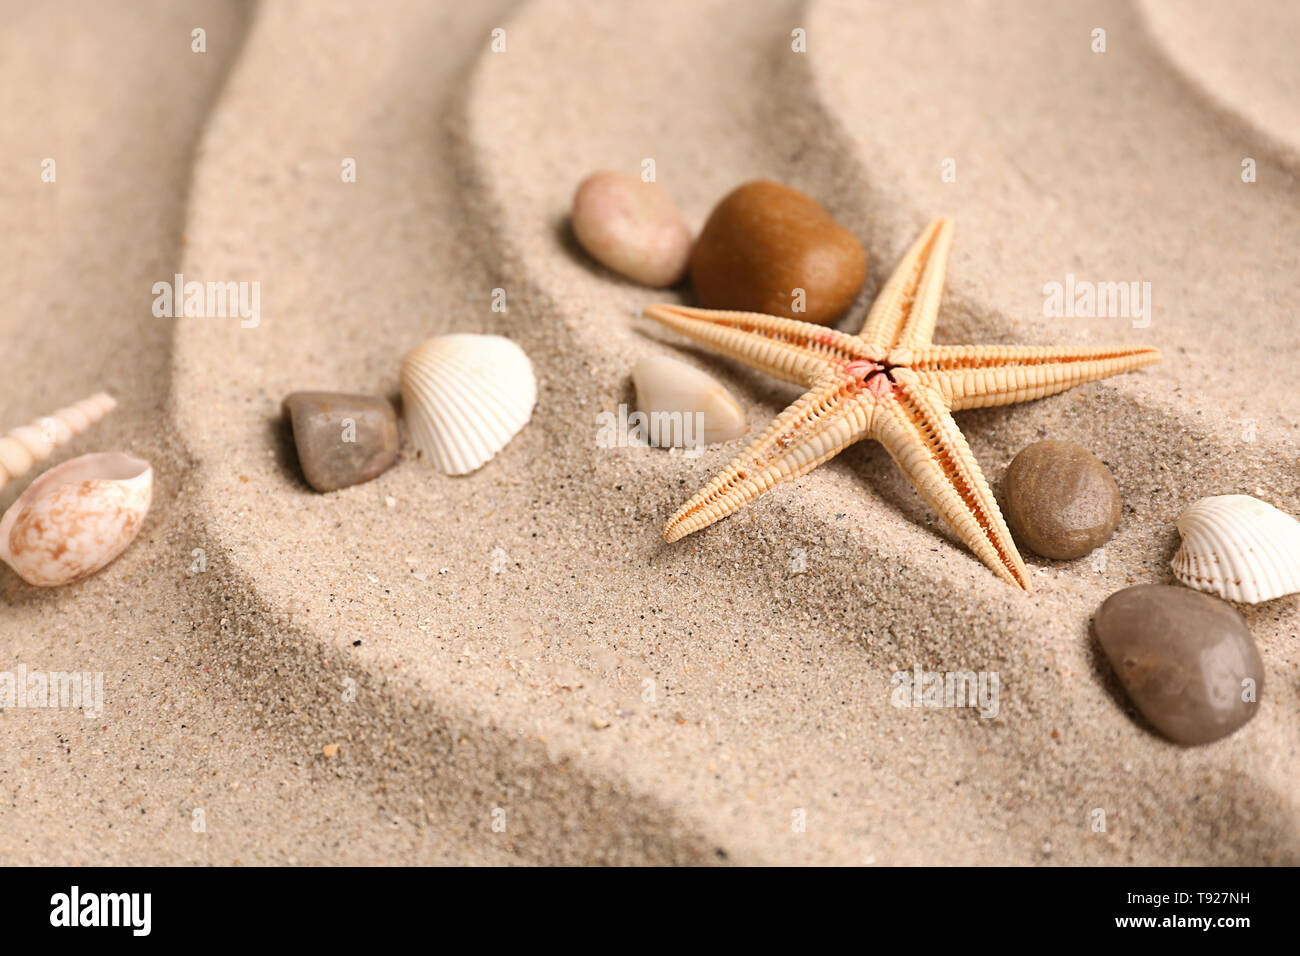 Different sea shells with starfish and stones on sand - Stock Image